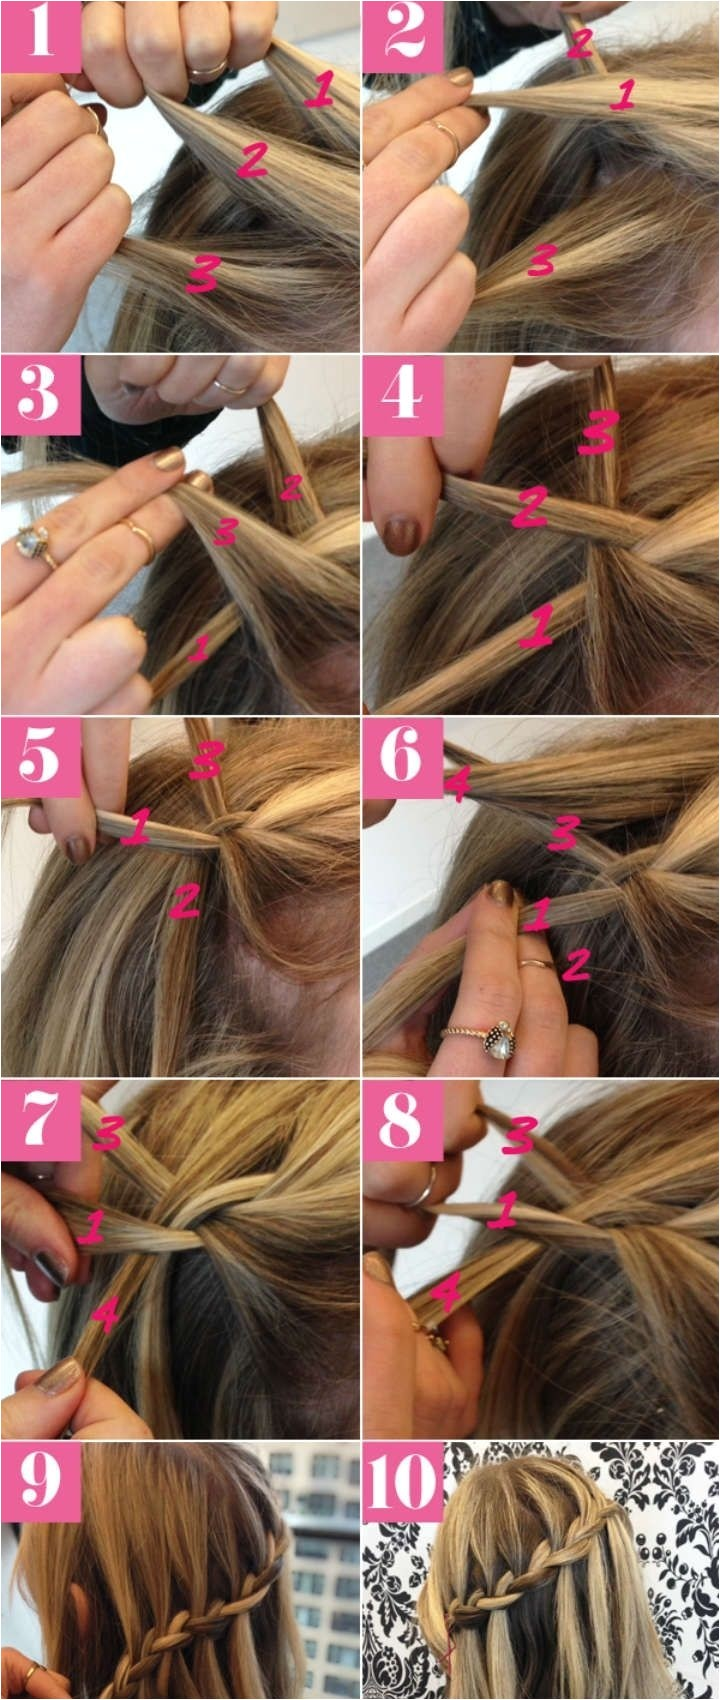 How to Do Hairstyles with Braids 10 Best Waterfall Braids Hairstyle Ideas for Long Hair